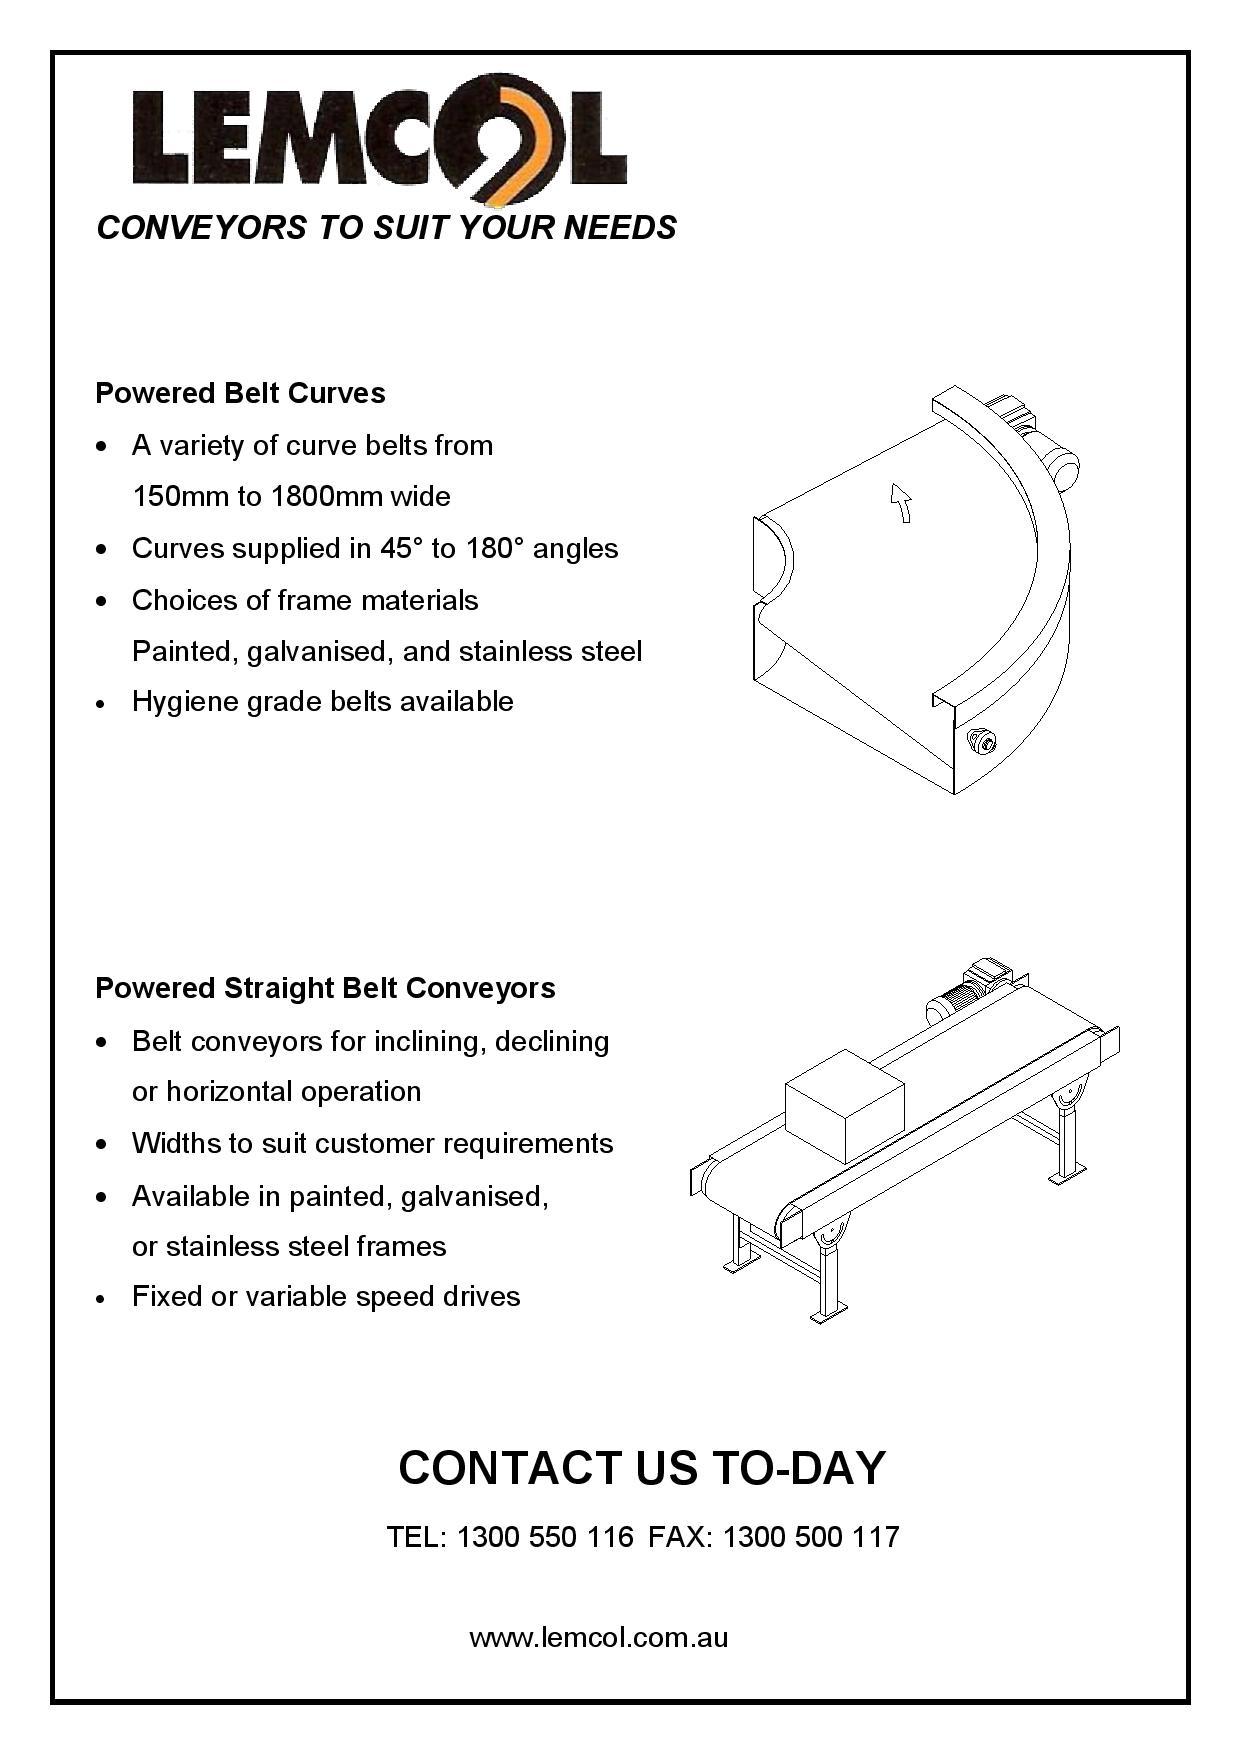 Lemcol Conveyor General-page-002